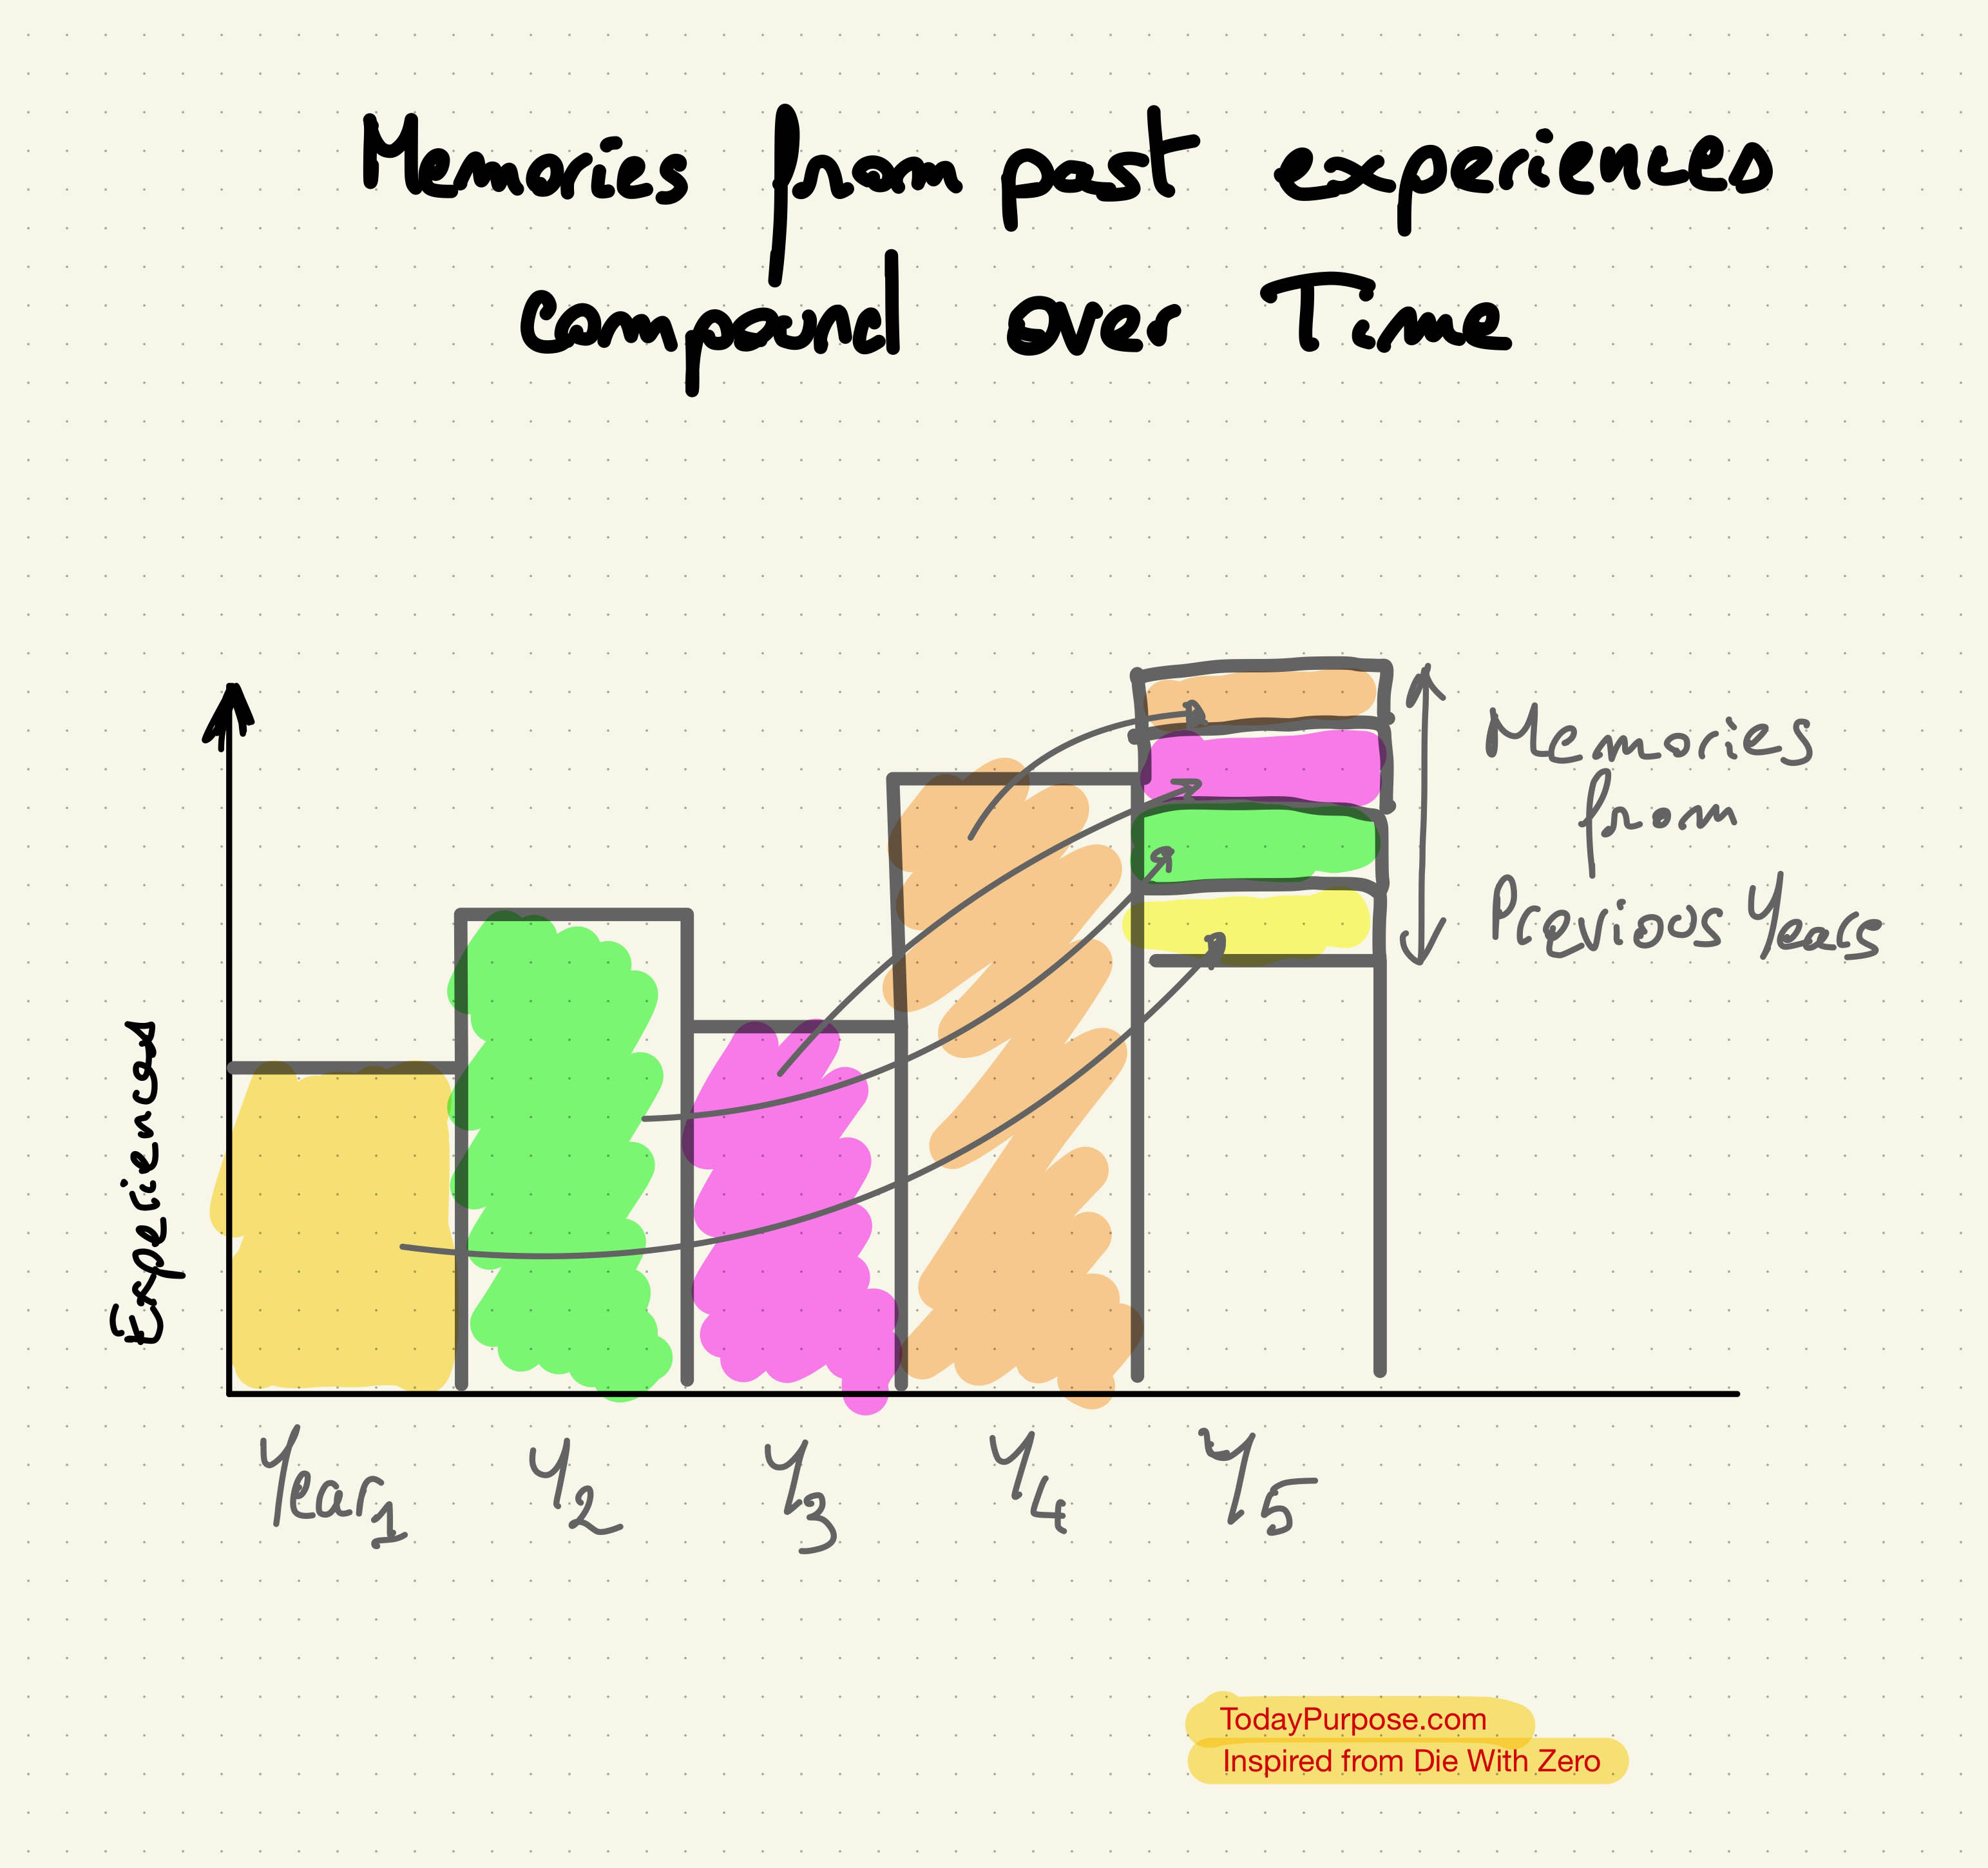 Memory compounding from experiences